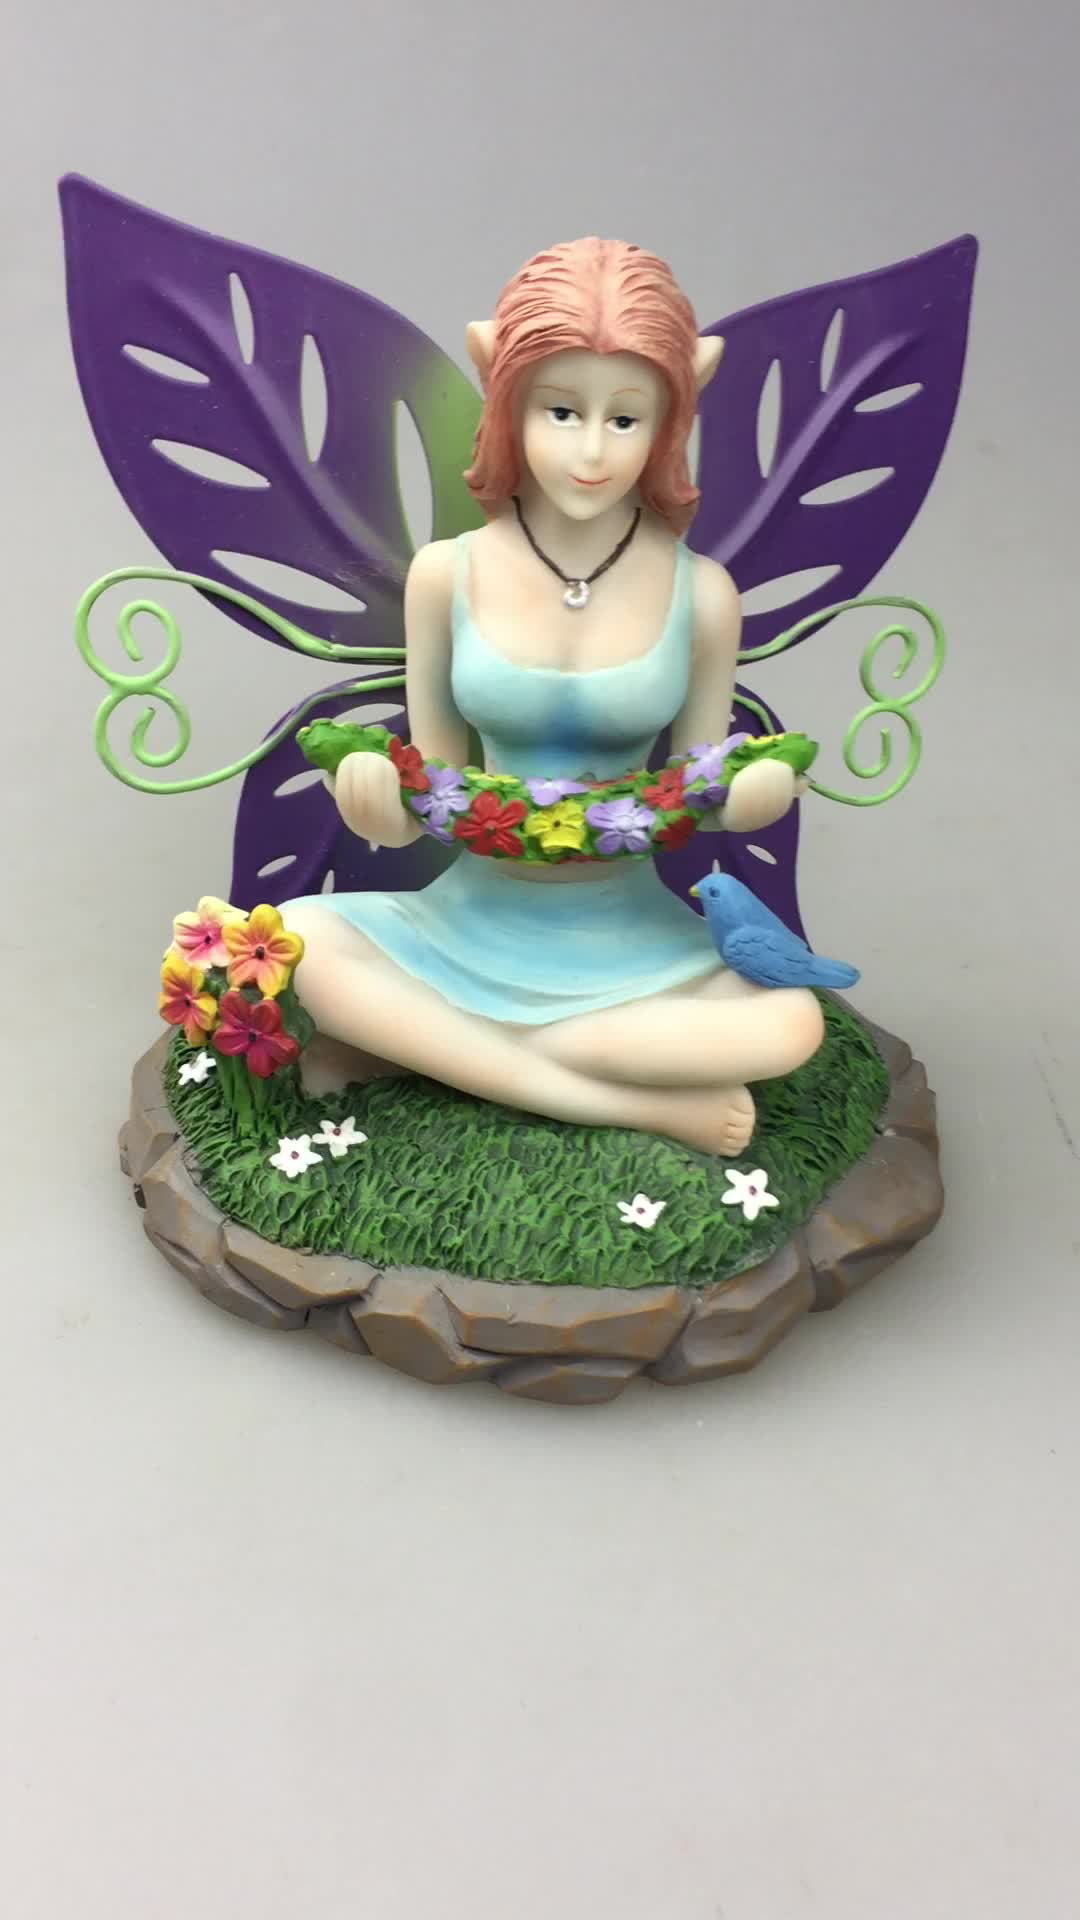 Anemone Yoga Fee Statue und Figuren